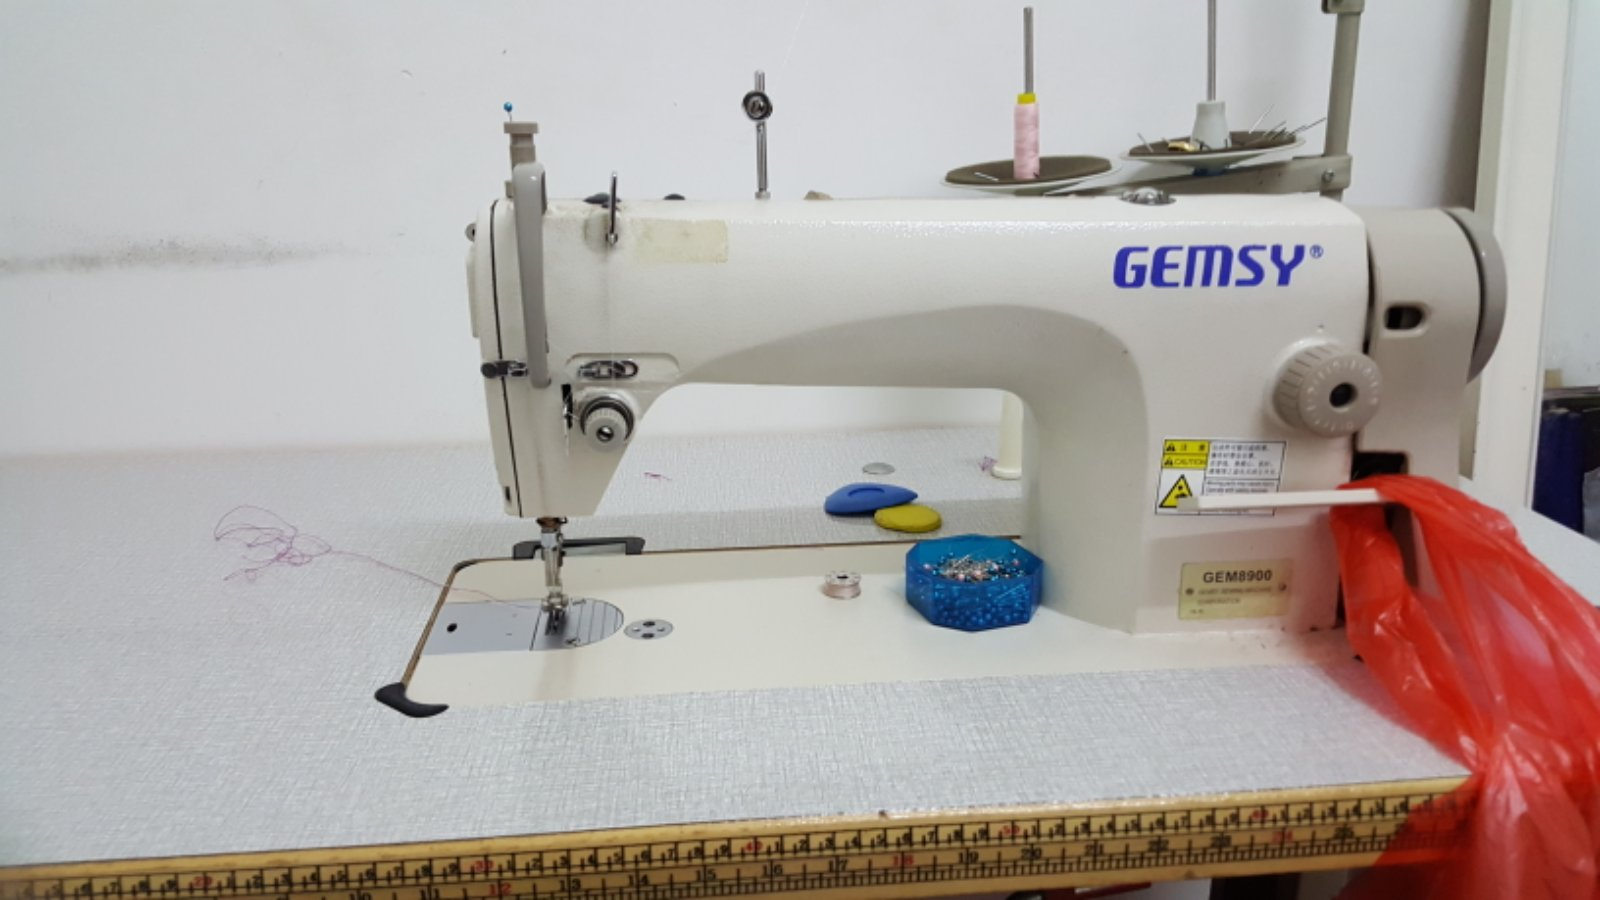 Second Hi Speed Sewing Machine